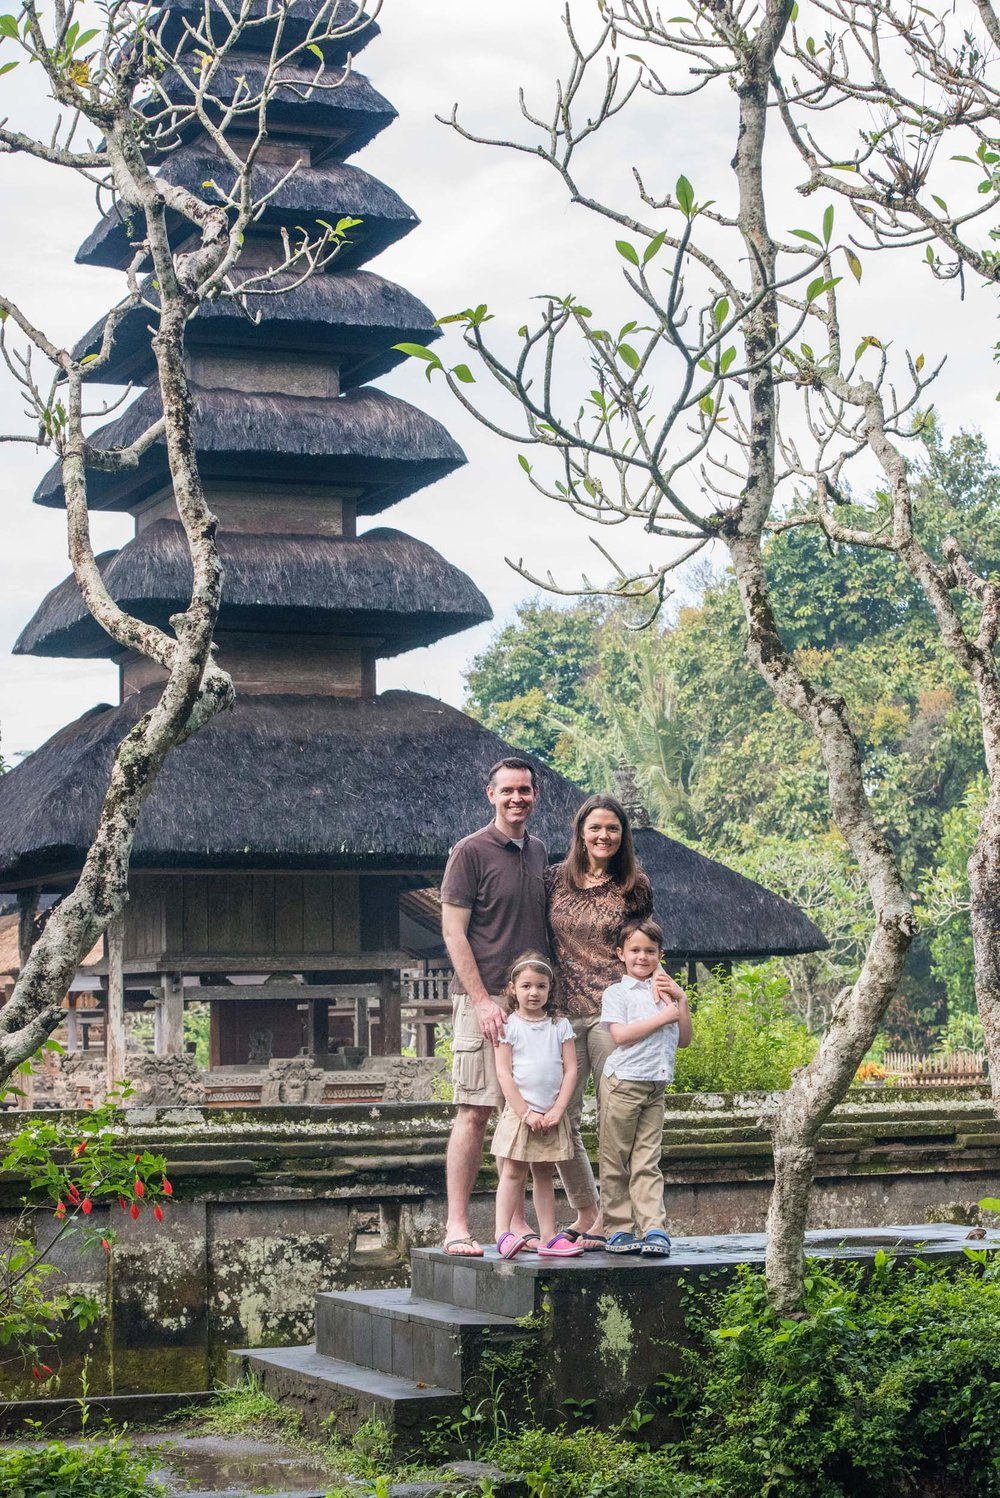 Check out our helpful guide to family travel in Bali and start planning your next vacation! | Travel + Vacation Photographer | Family Vacations | Engagement Proposals | Honeymoons | Anniversary Gifts | Bachelorette Ideas | Solo Traveller Tips |  Flytographer captures your travel memories - everything from surprise proposals, honeymoons, family vacations, and more. So often you are missing out of your own photos! Flytographer solves that problem for you. Our photographers also act as informal tour guides and provide fun local tips to our customers, showing them an area of a city they may not have explored without Flytographer. Book your photographer at 1.888.211.7178 or visit our website at www.flytographer.com/book